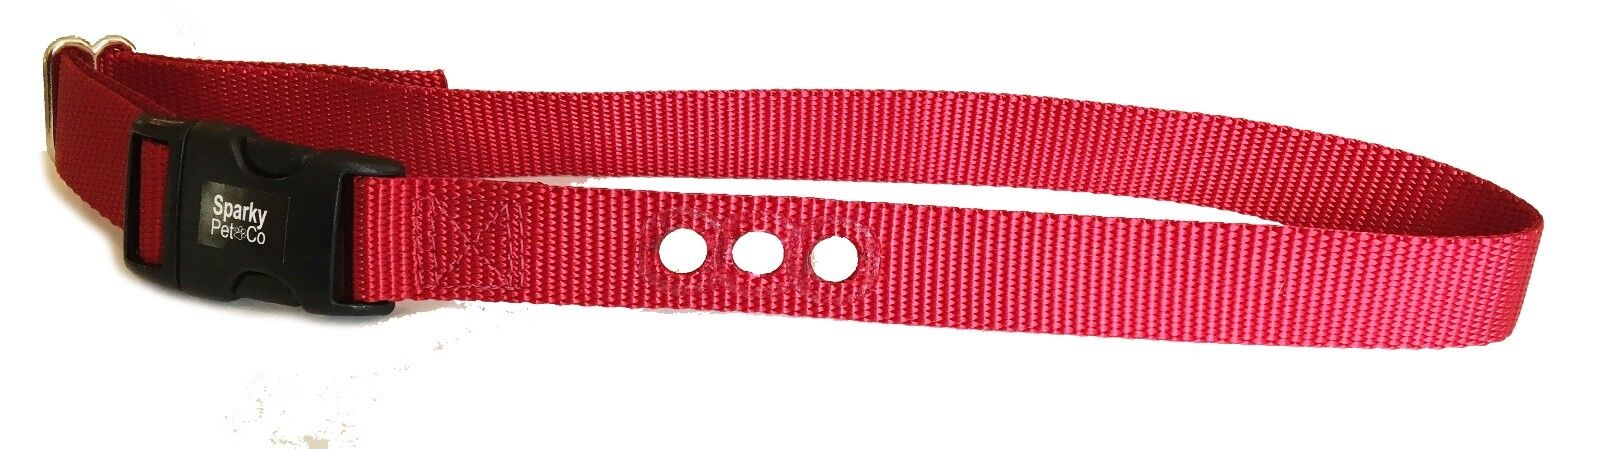 10 Sparky PetCo 1  3 Hole Consecutive Hole Red Fence Collar For PetSafe Systems